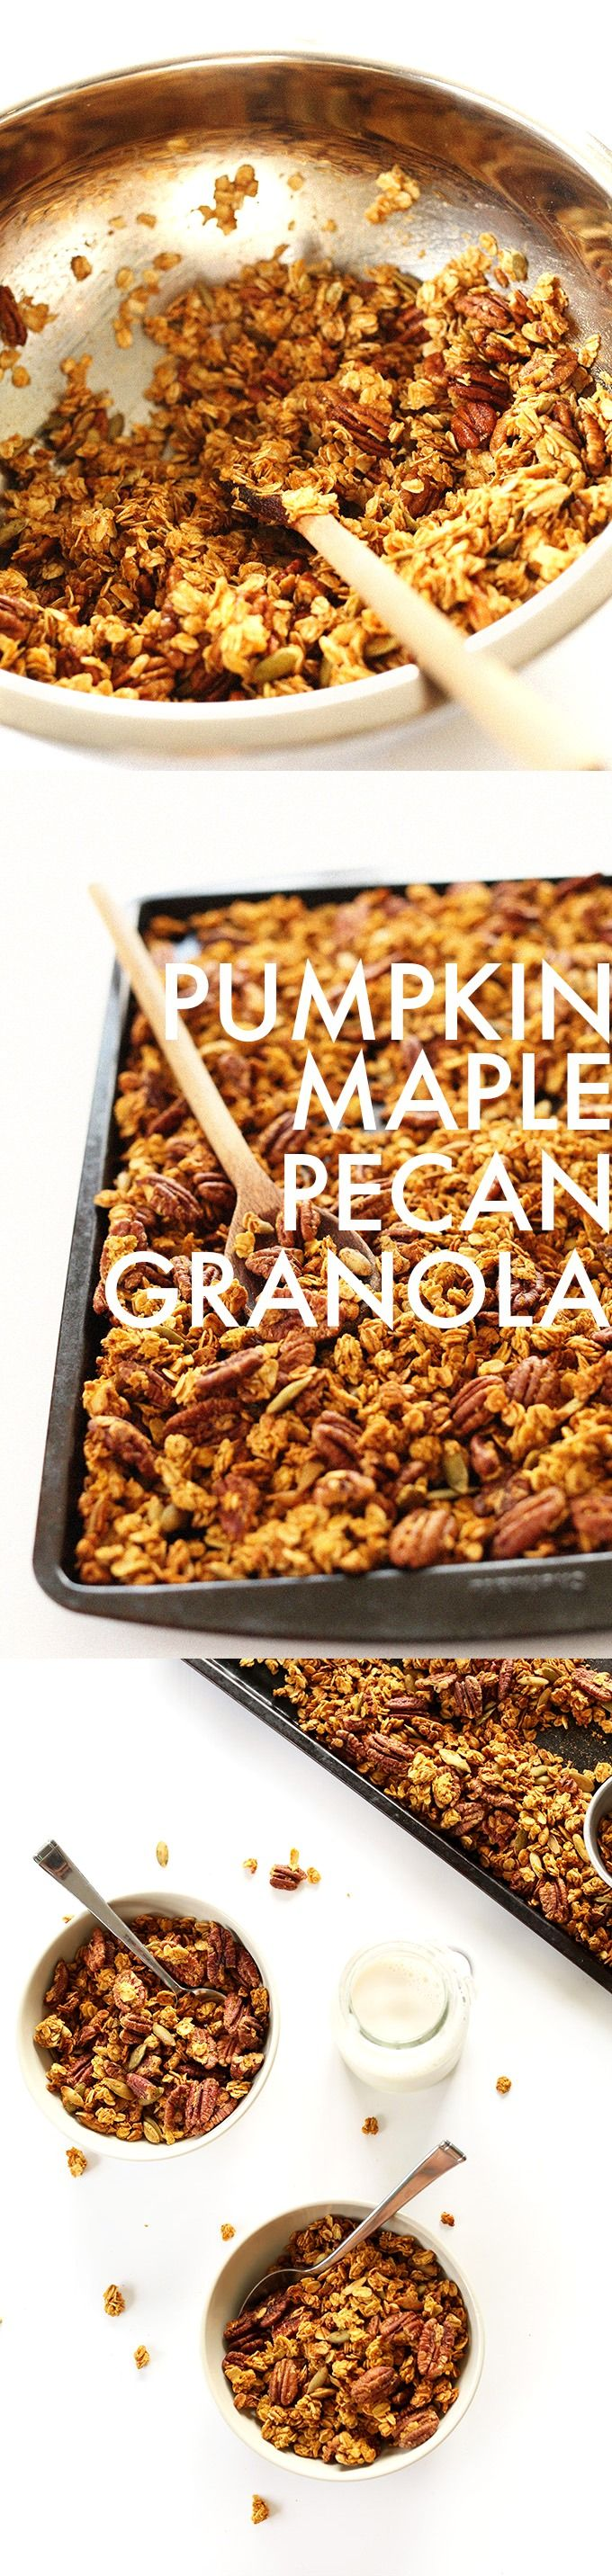 AMAZING 30-minute, 9 ingredient Vegan Pumpkin Maple Granola loaded with pecans, pumpkin seeds and sweetened with maple syrup!